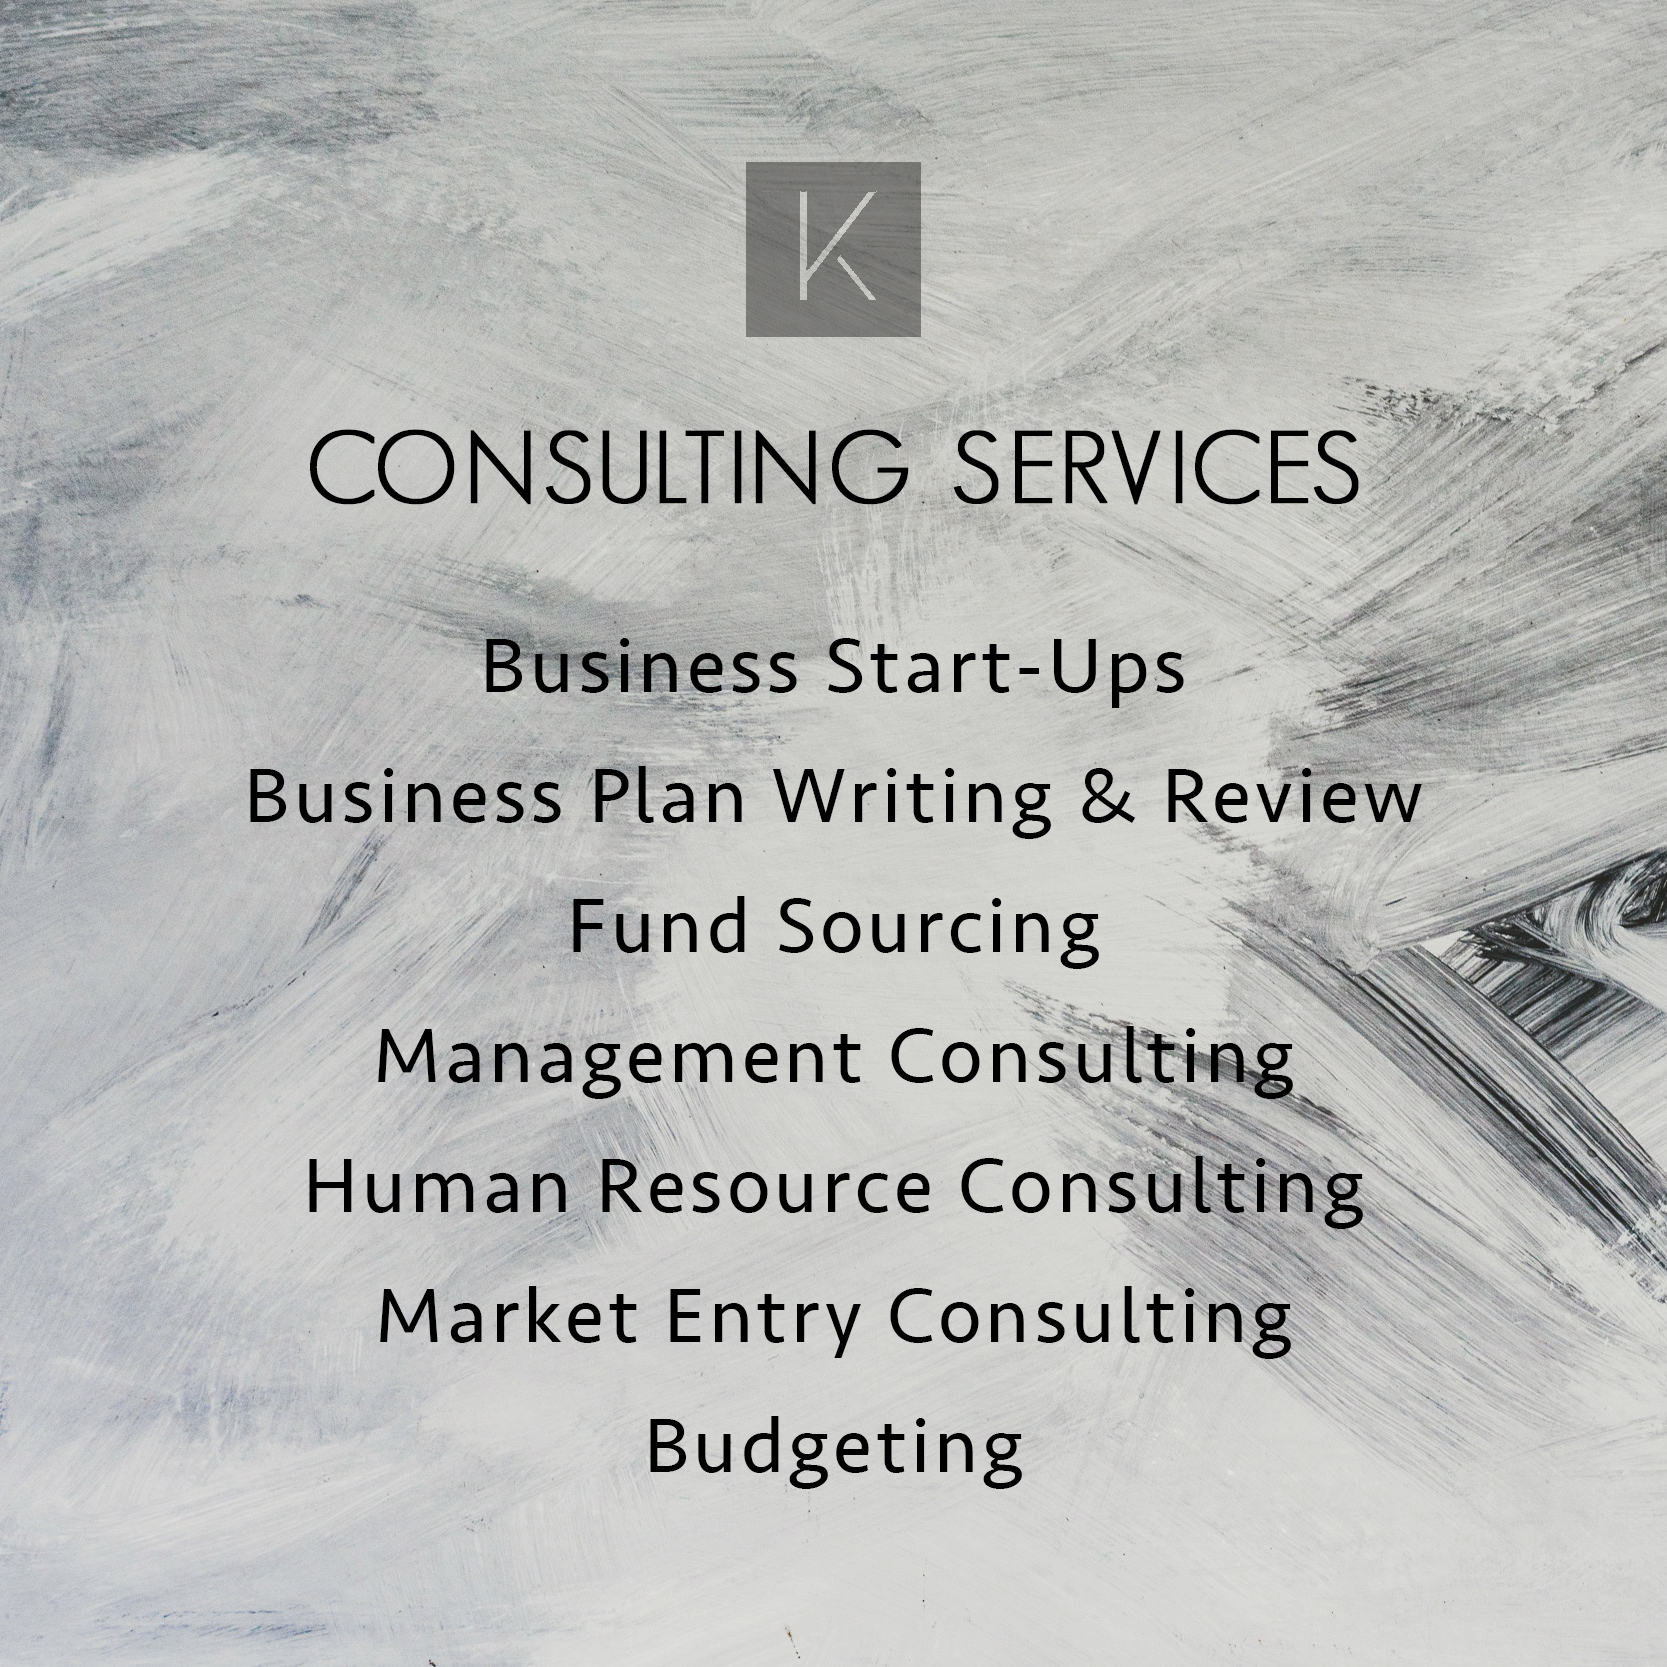 Our Consulting Services